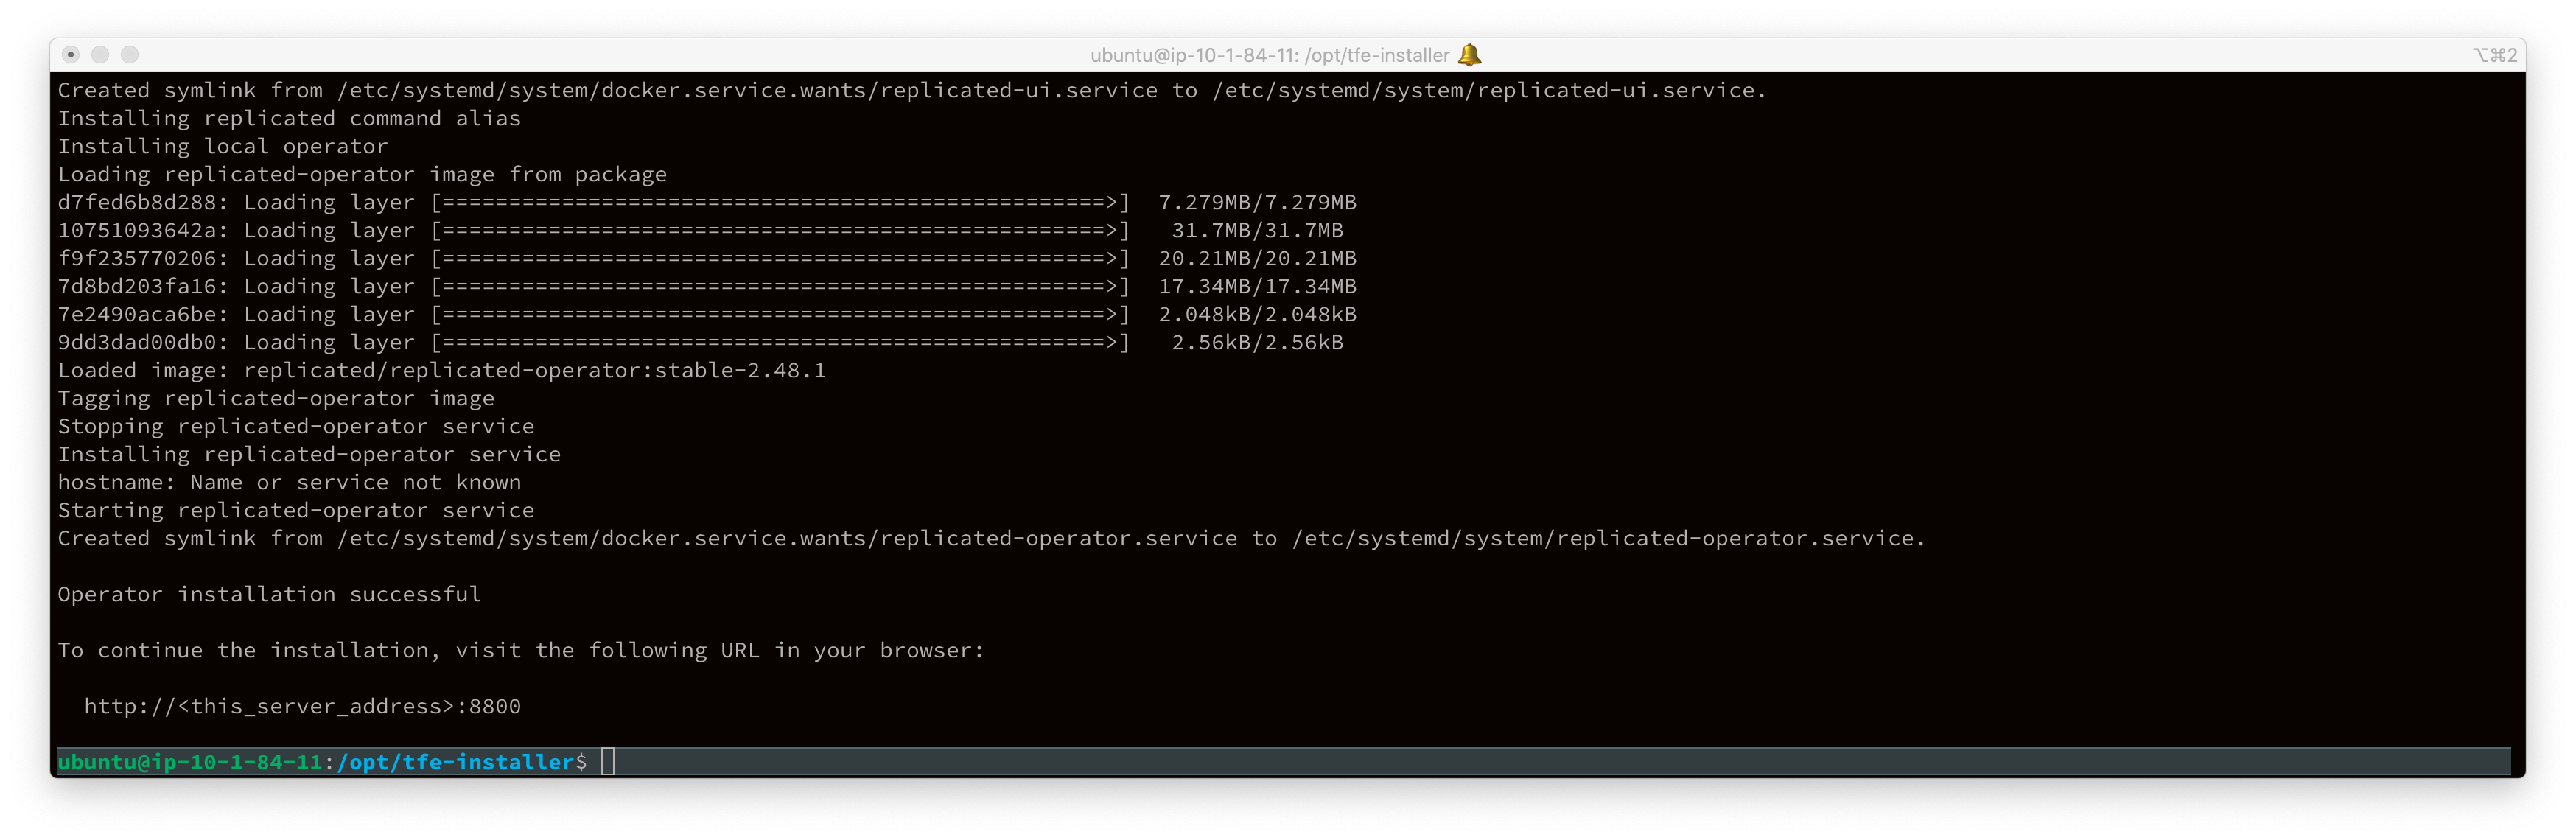 Execute install airgap command to begin the install.